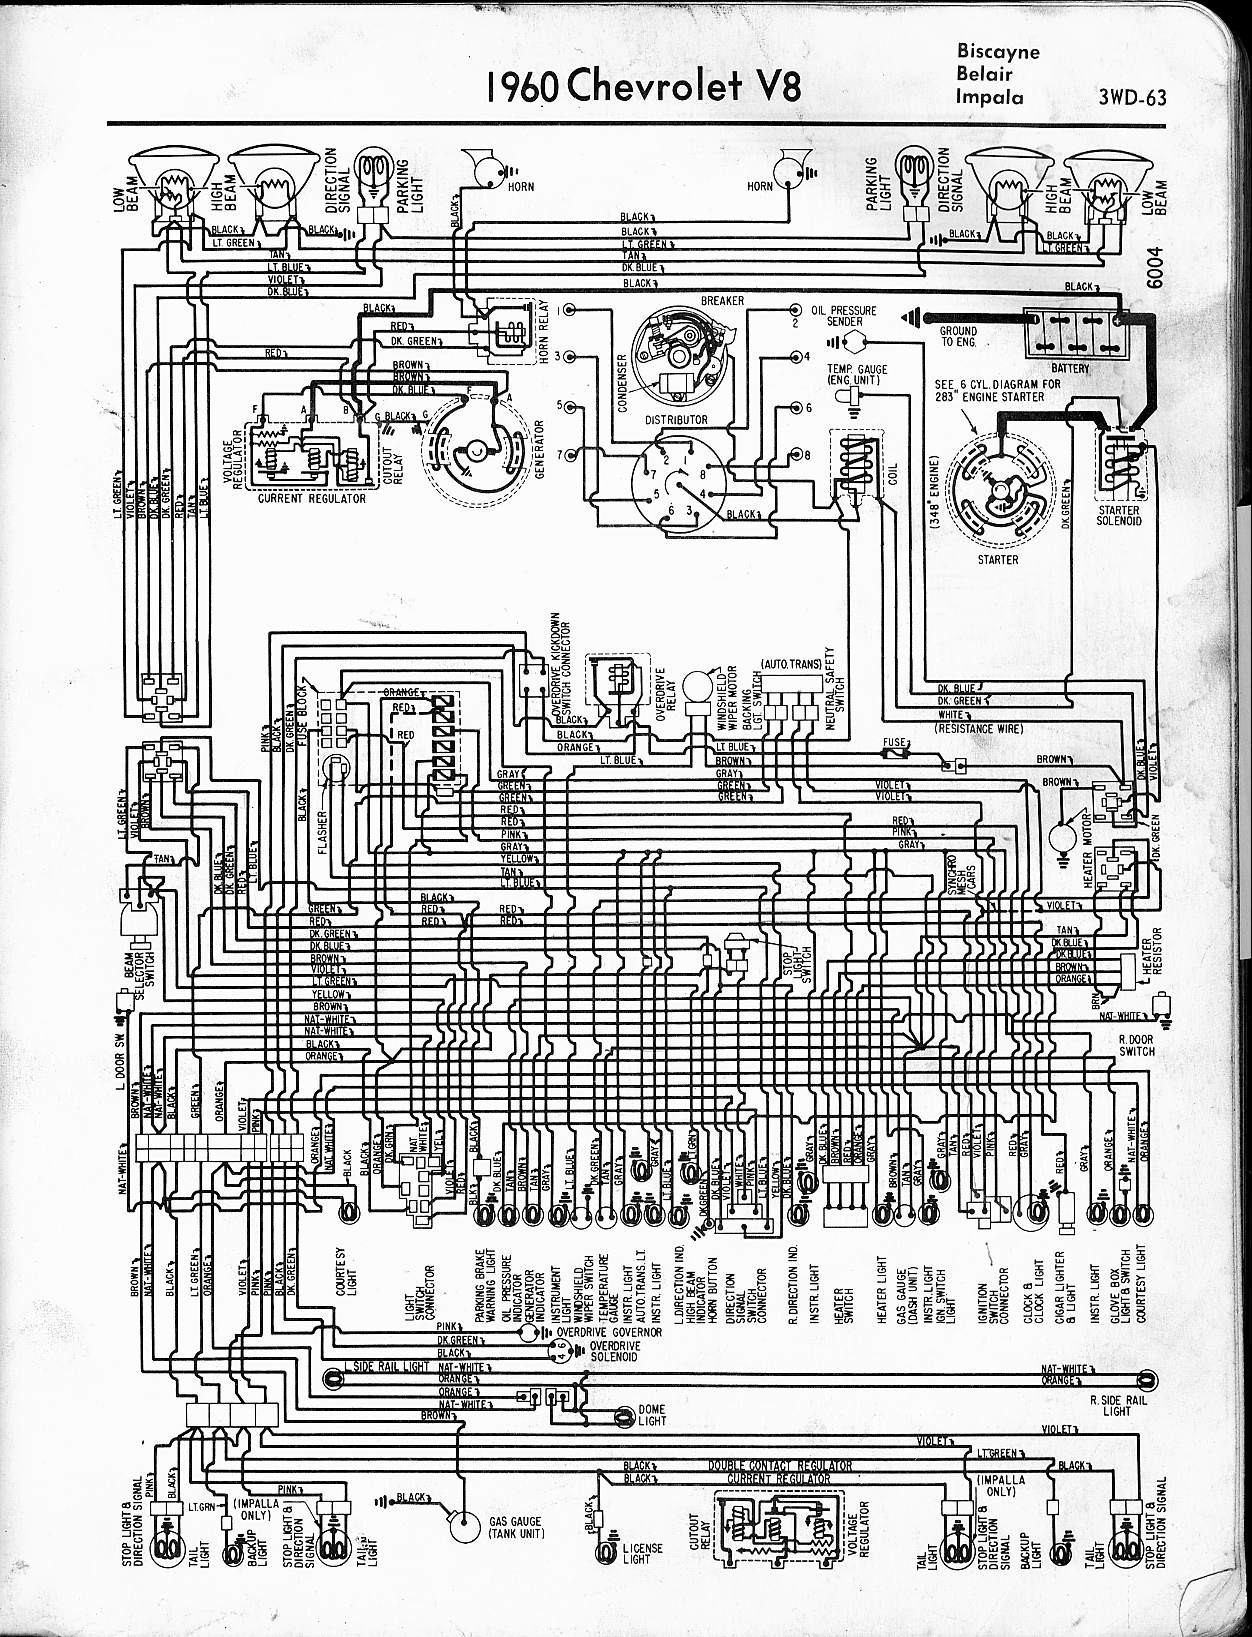 El Camino Wiring Diagram Wiring Diagram Electrical Panel Save 1970 Chevelle Fuse Box Diagram Of El Camino Wiring Diagram